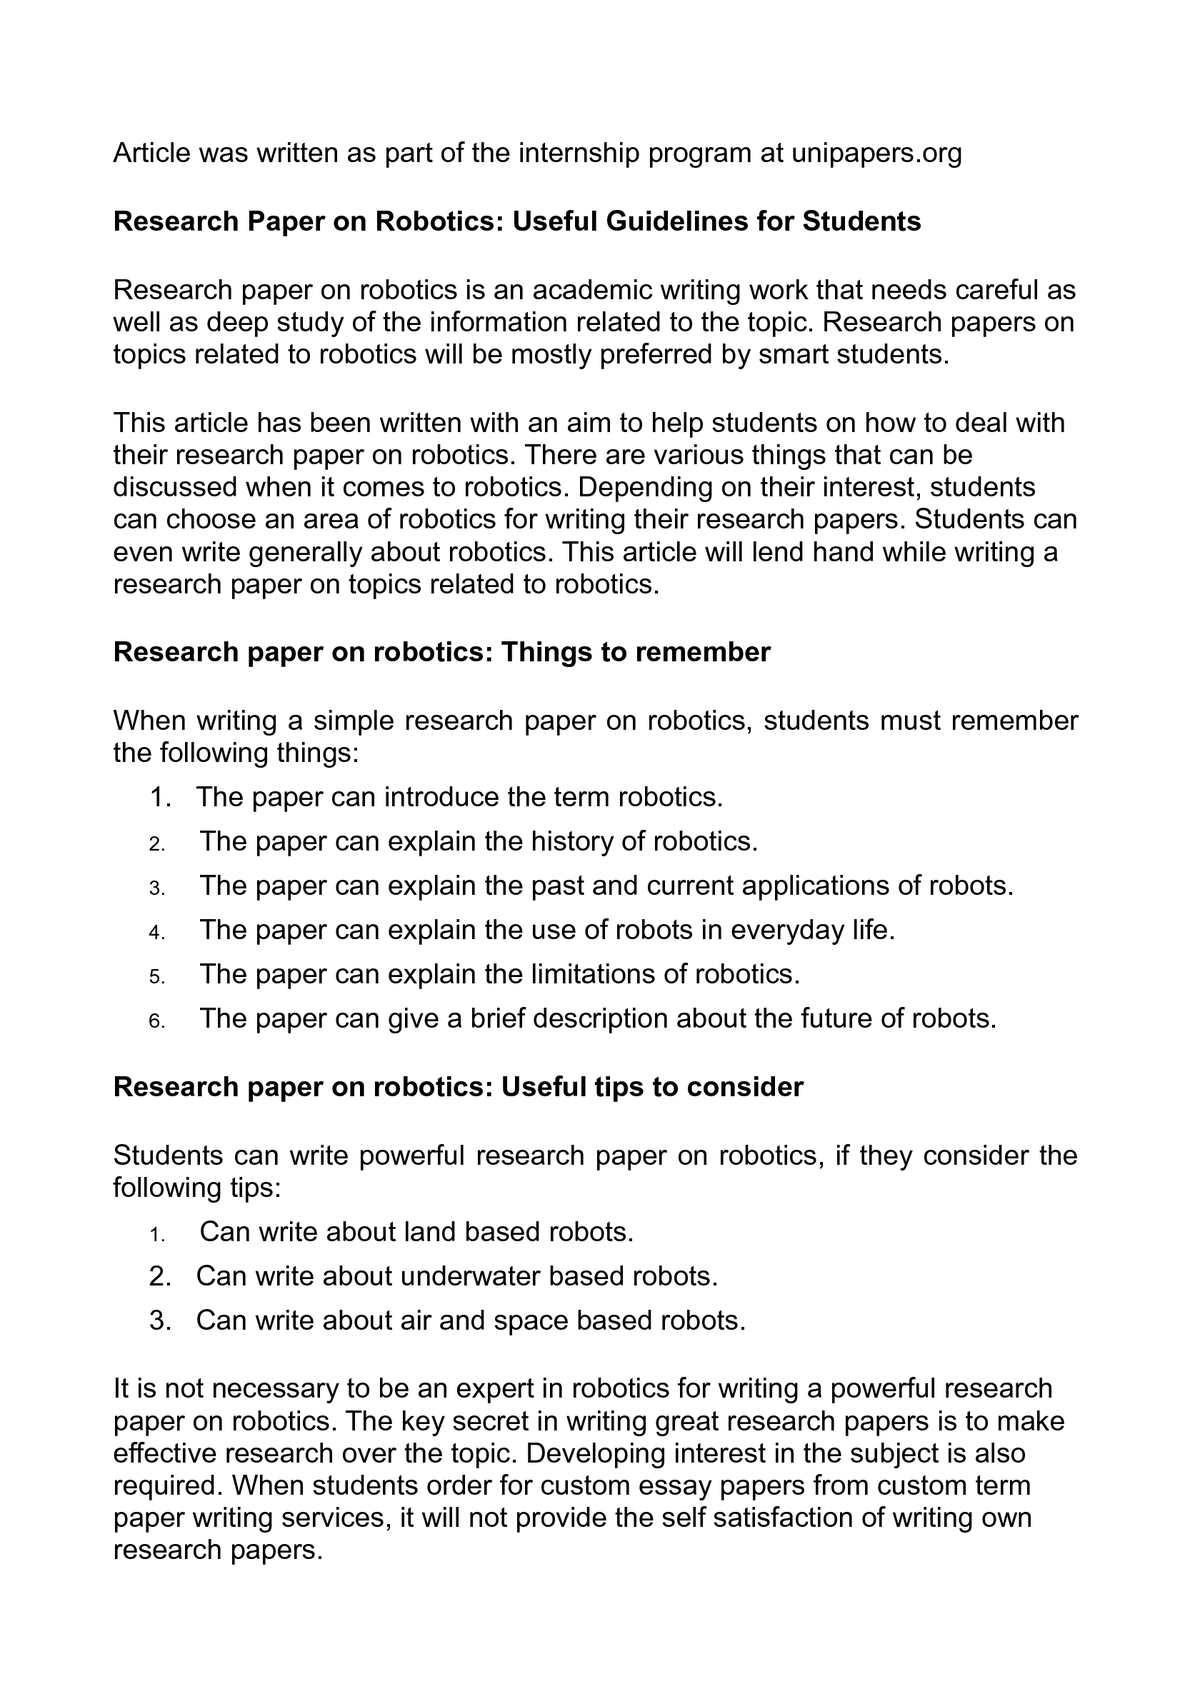 what are some good topics for a research paper